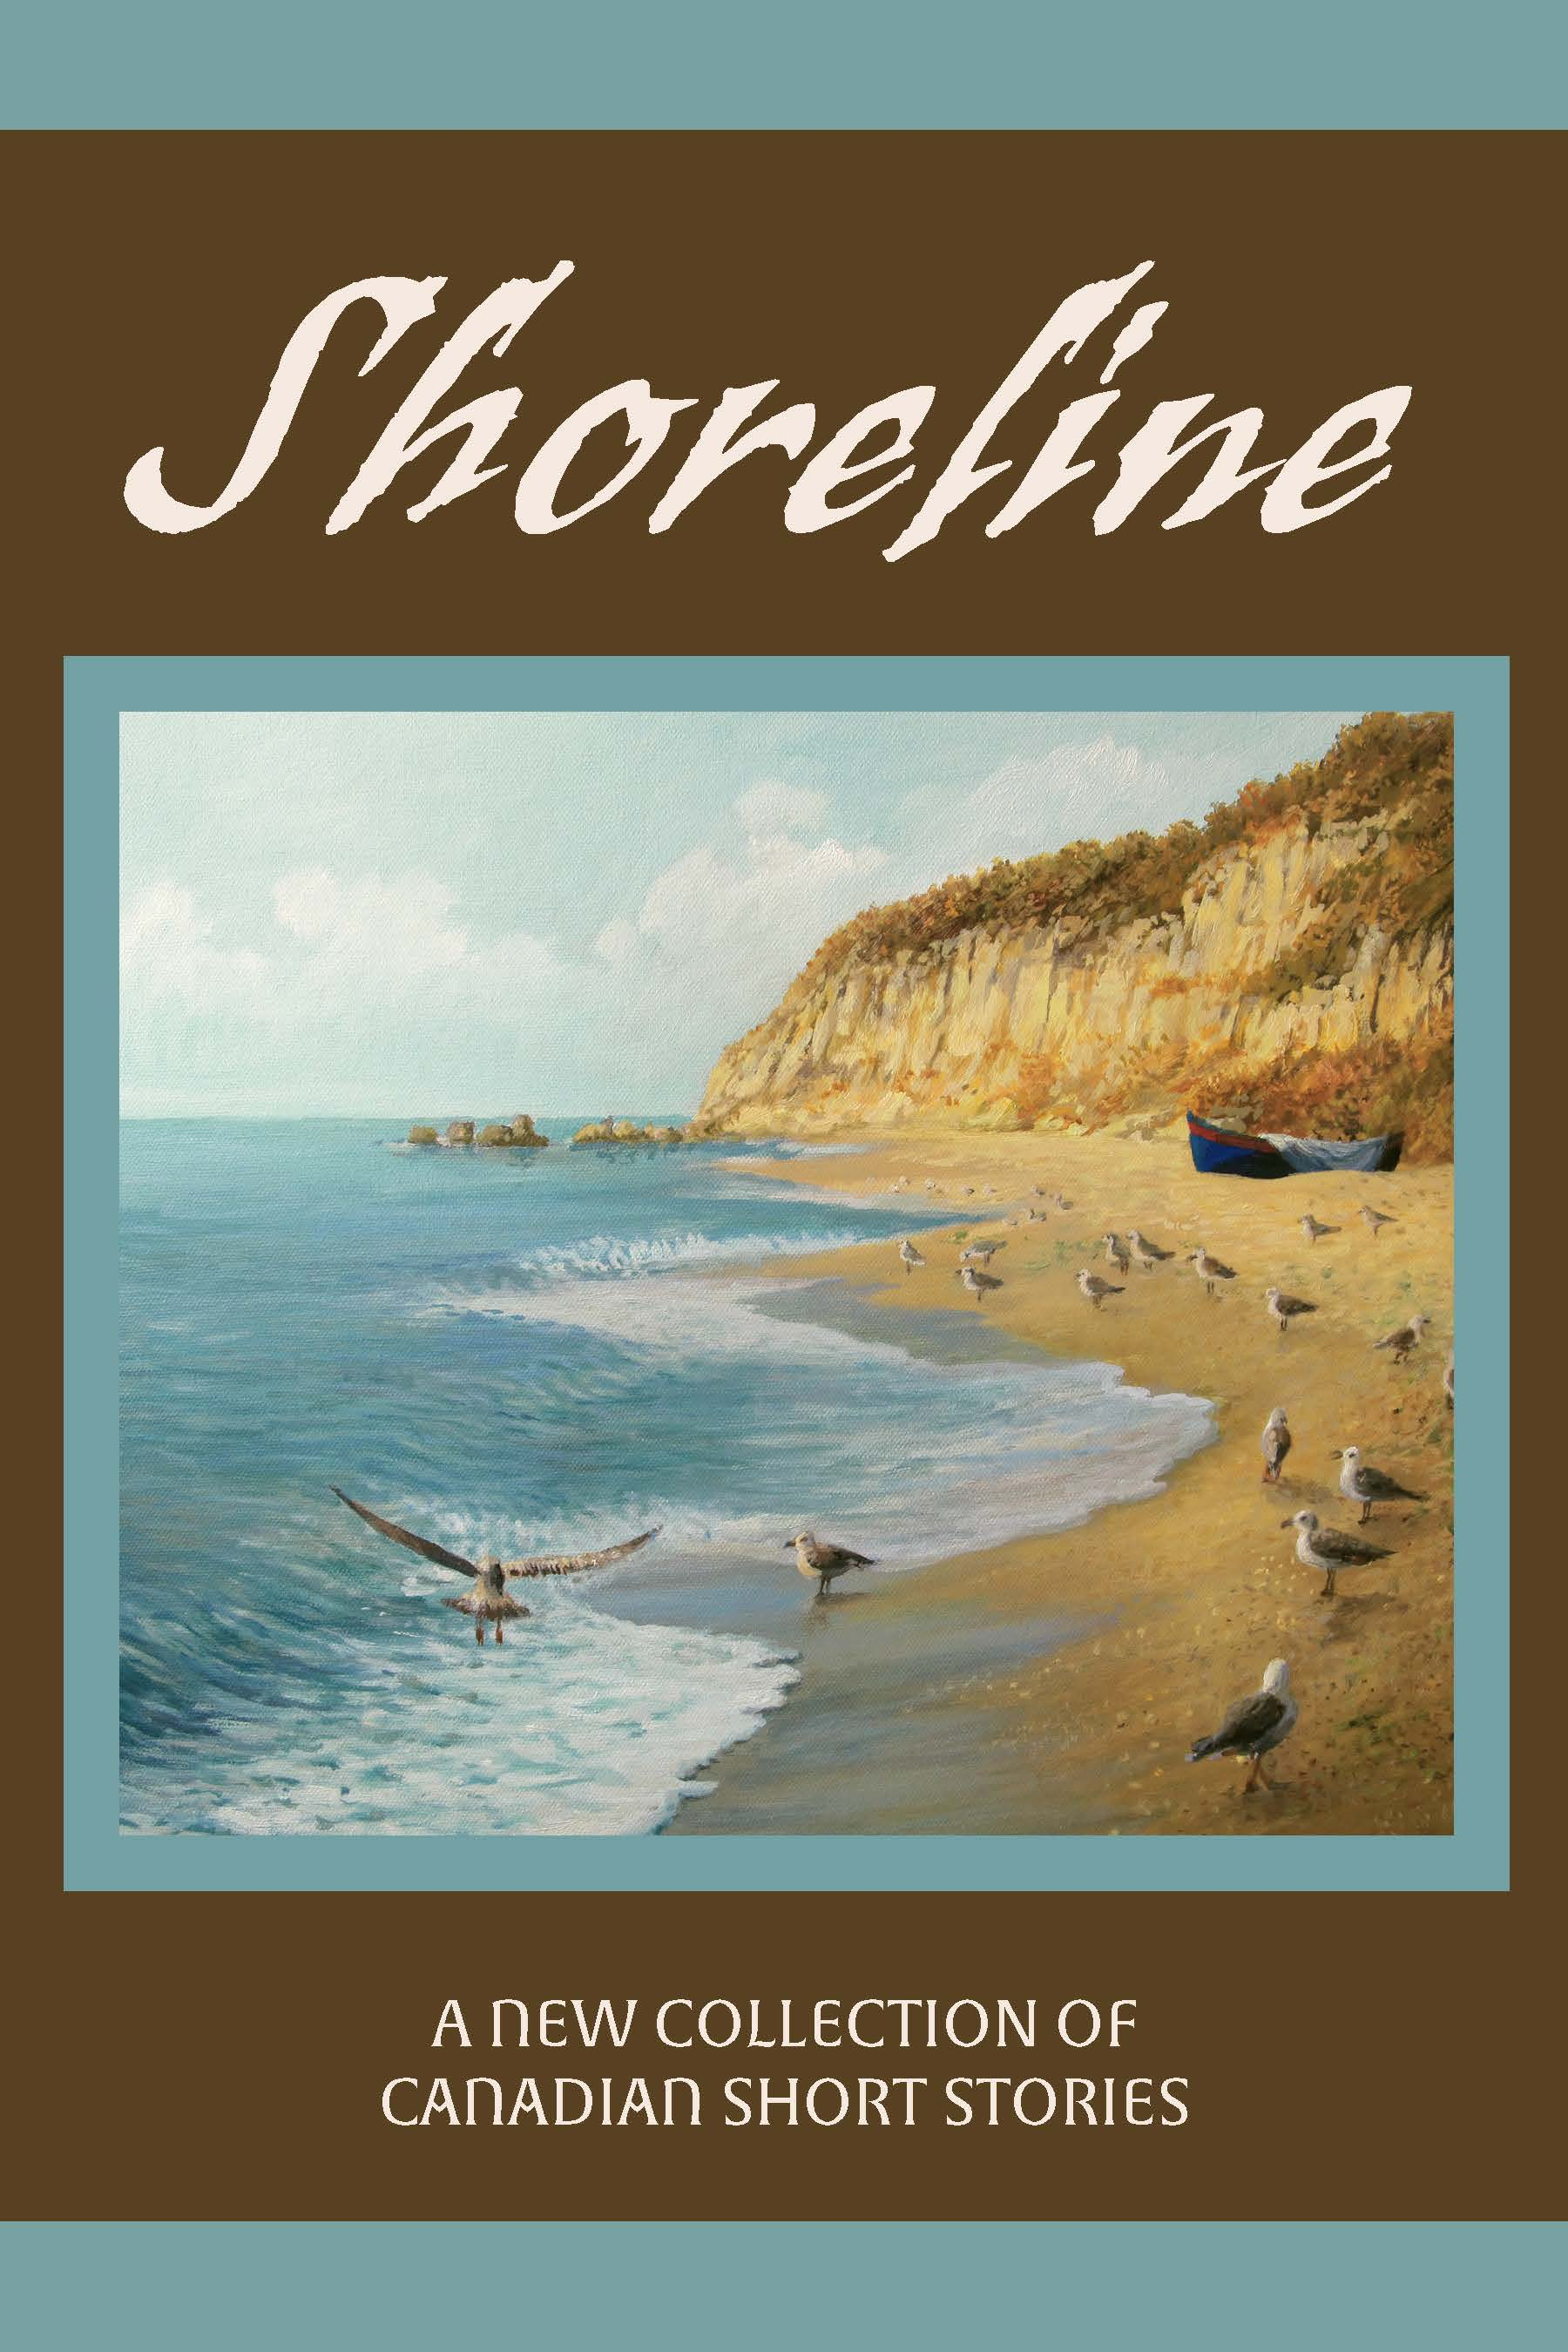 Shoreline Summer 2016 Story Collection